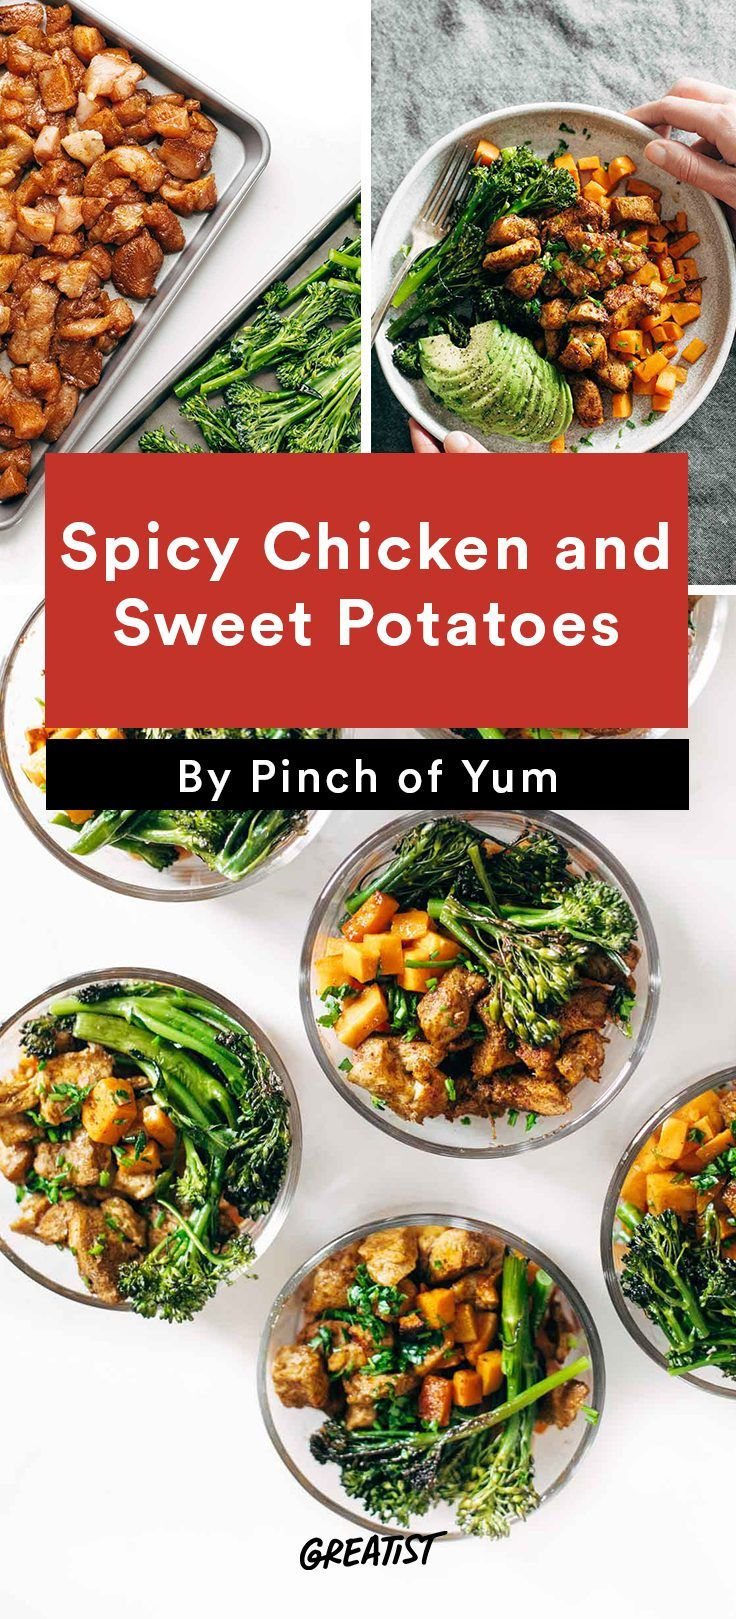 Meal Prep Lunches: Spicy Chicken and Sweet Potatoes